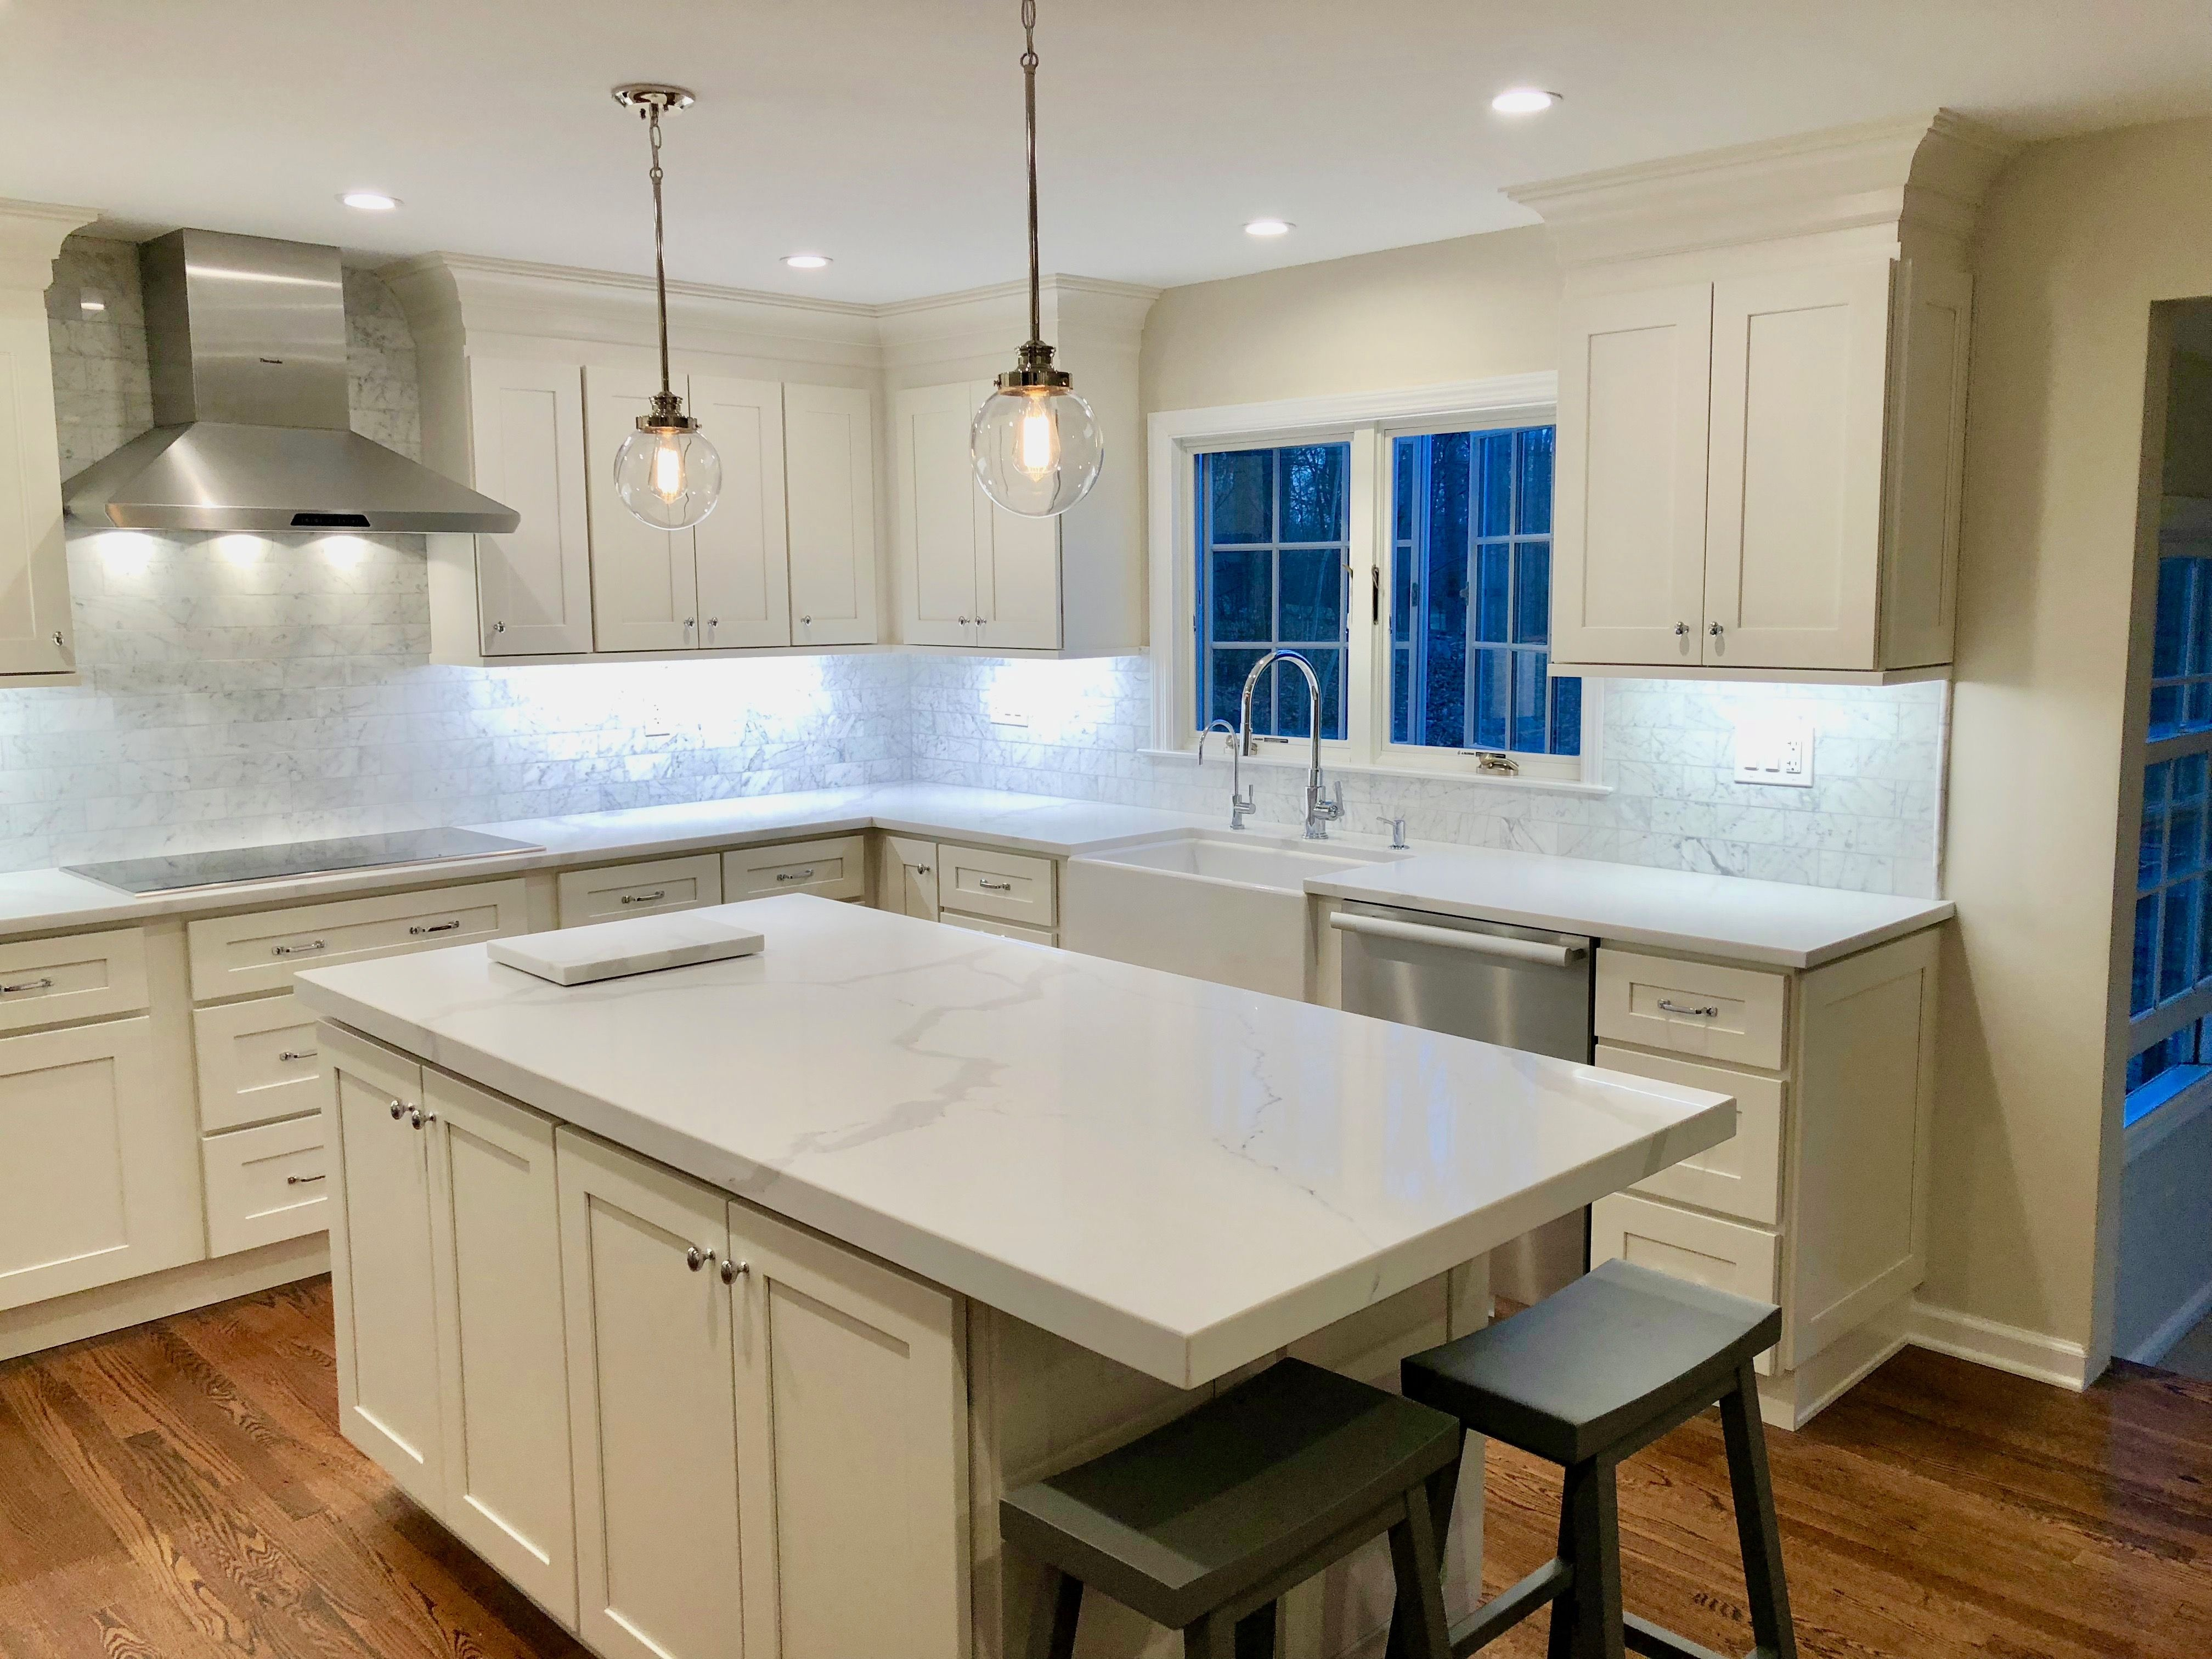 Kitchen Countertops And 2 Laminate Island With Quartz Divine By